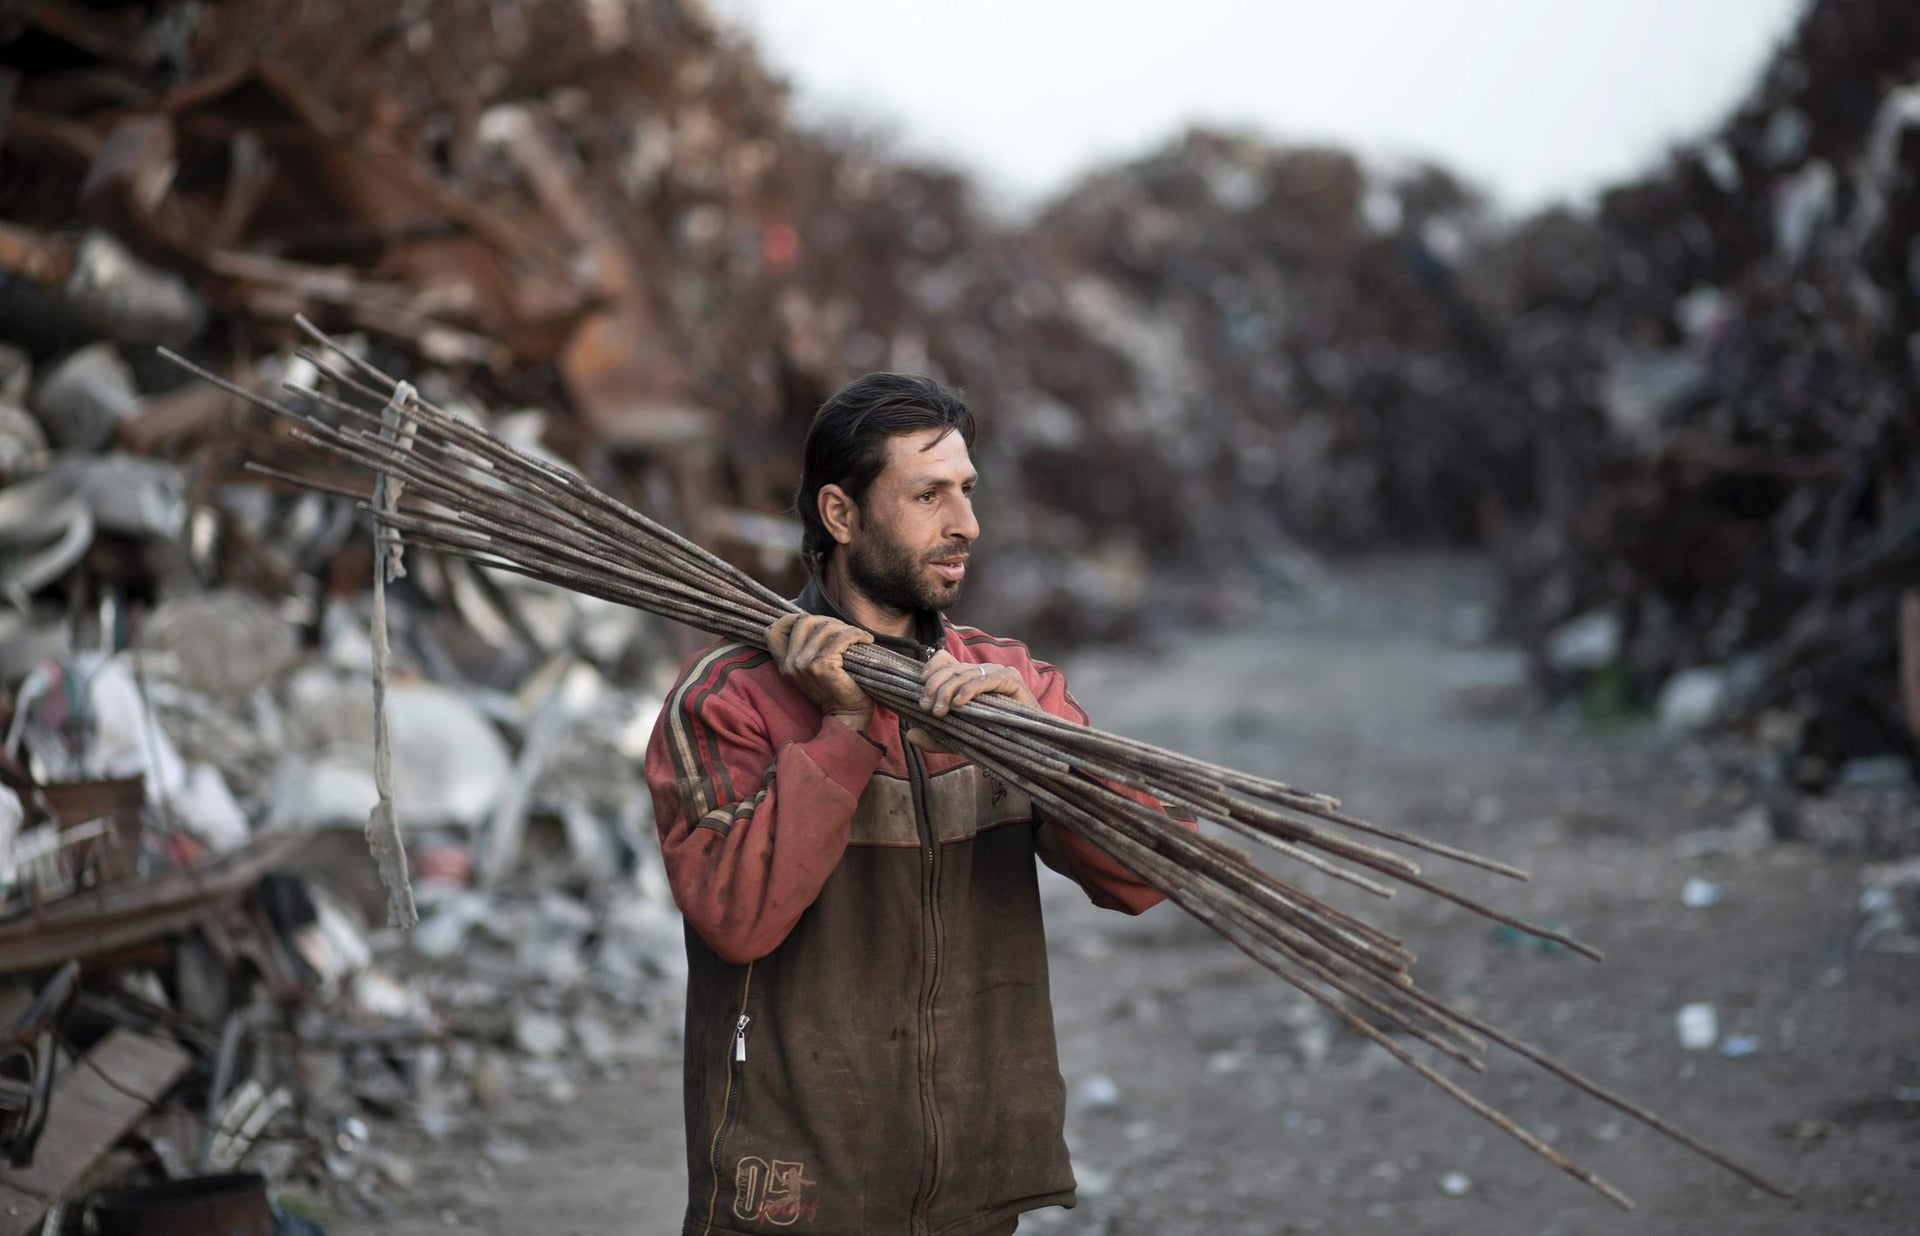 A Palestinian worker carries metal sticks in East Gaza City, on February 20, 2016.